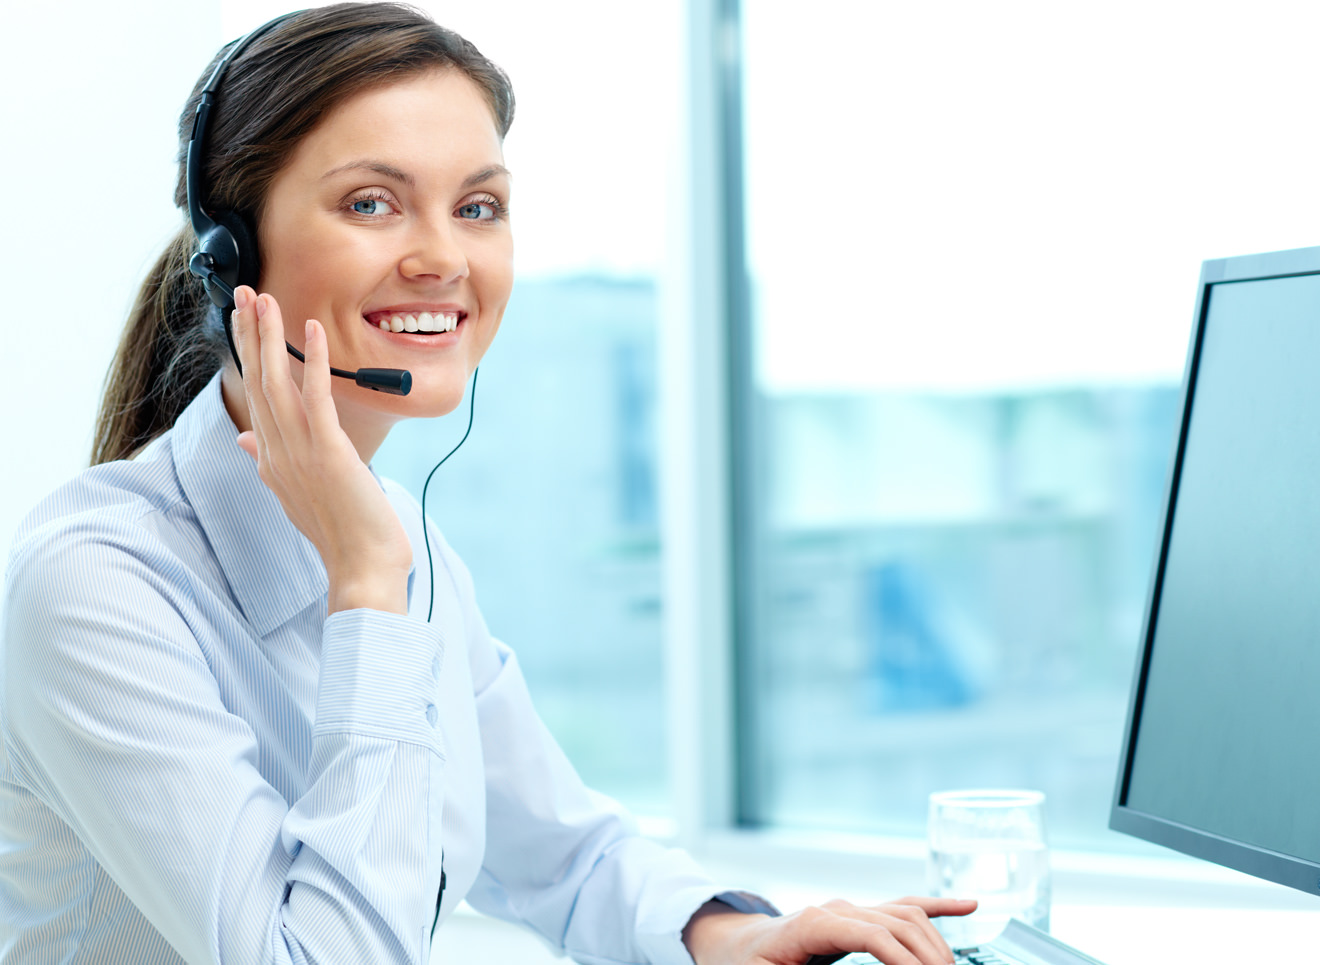 Proactive Managed IT Services Support